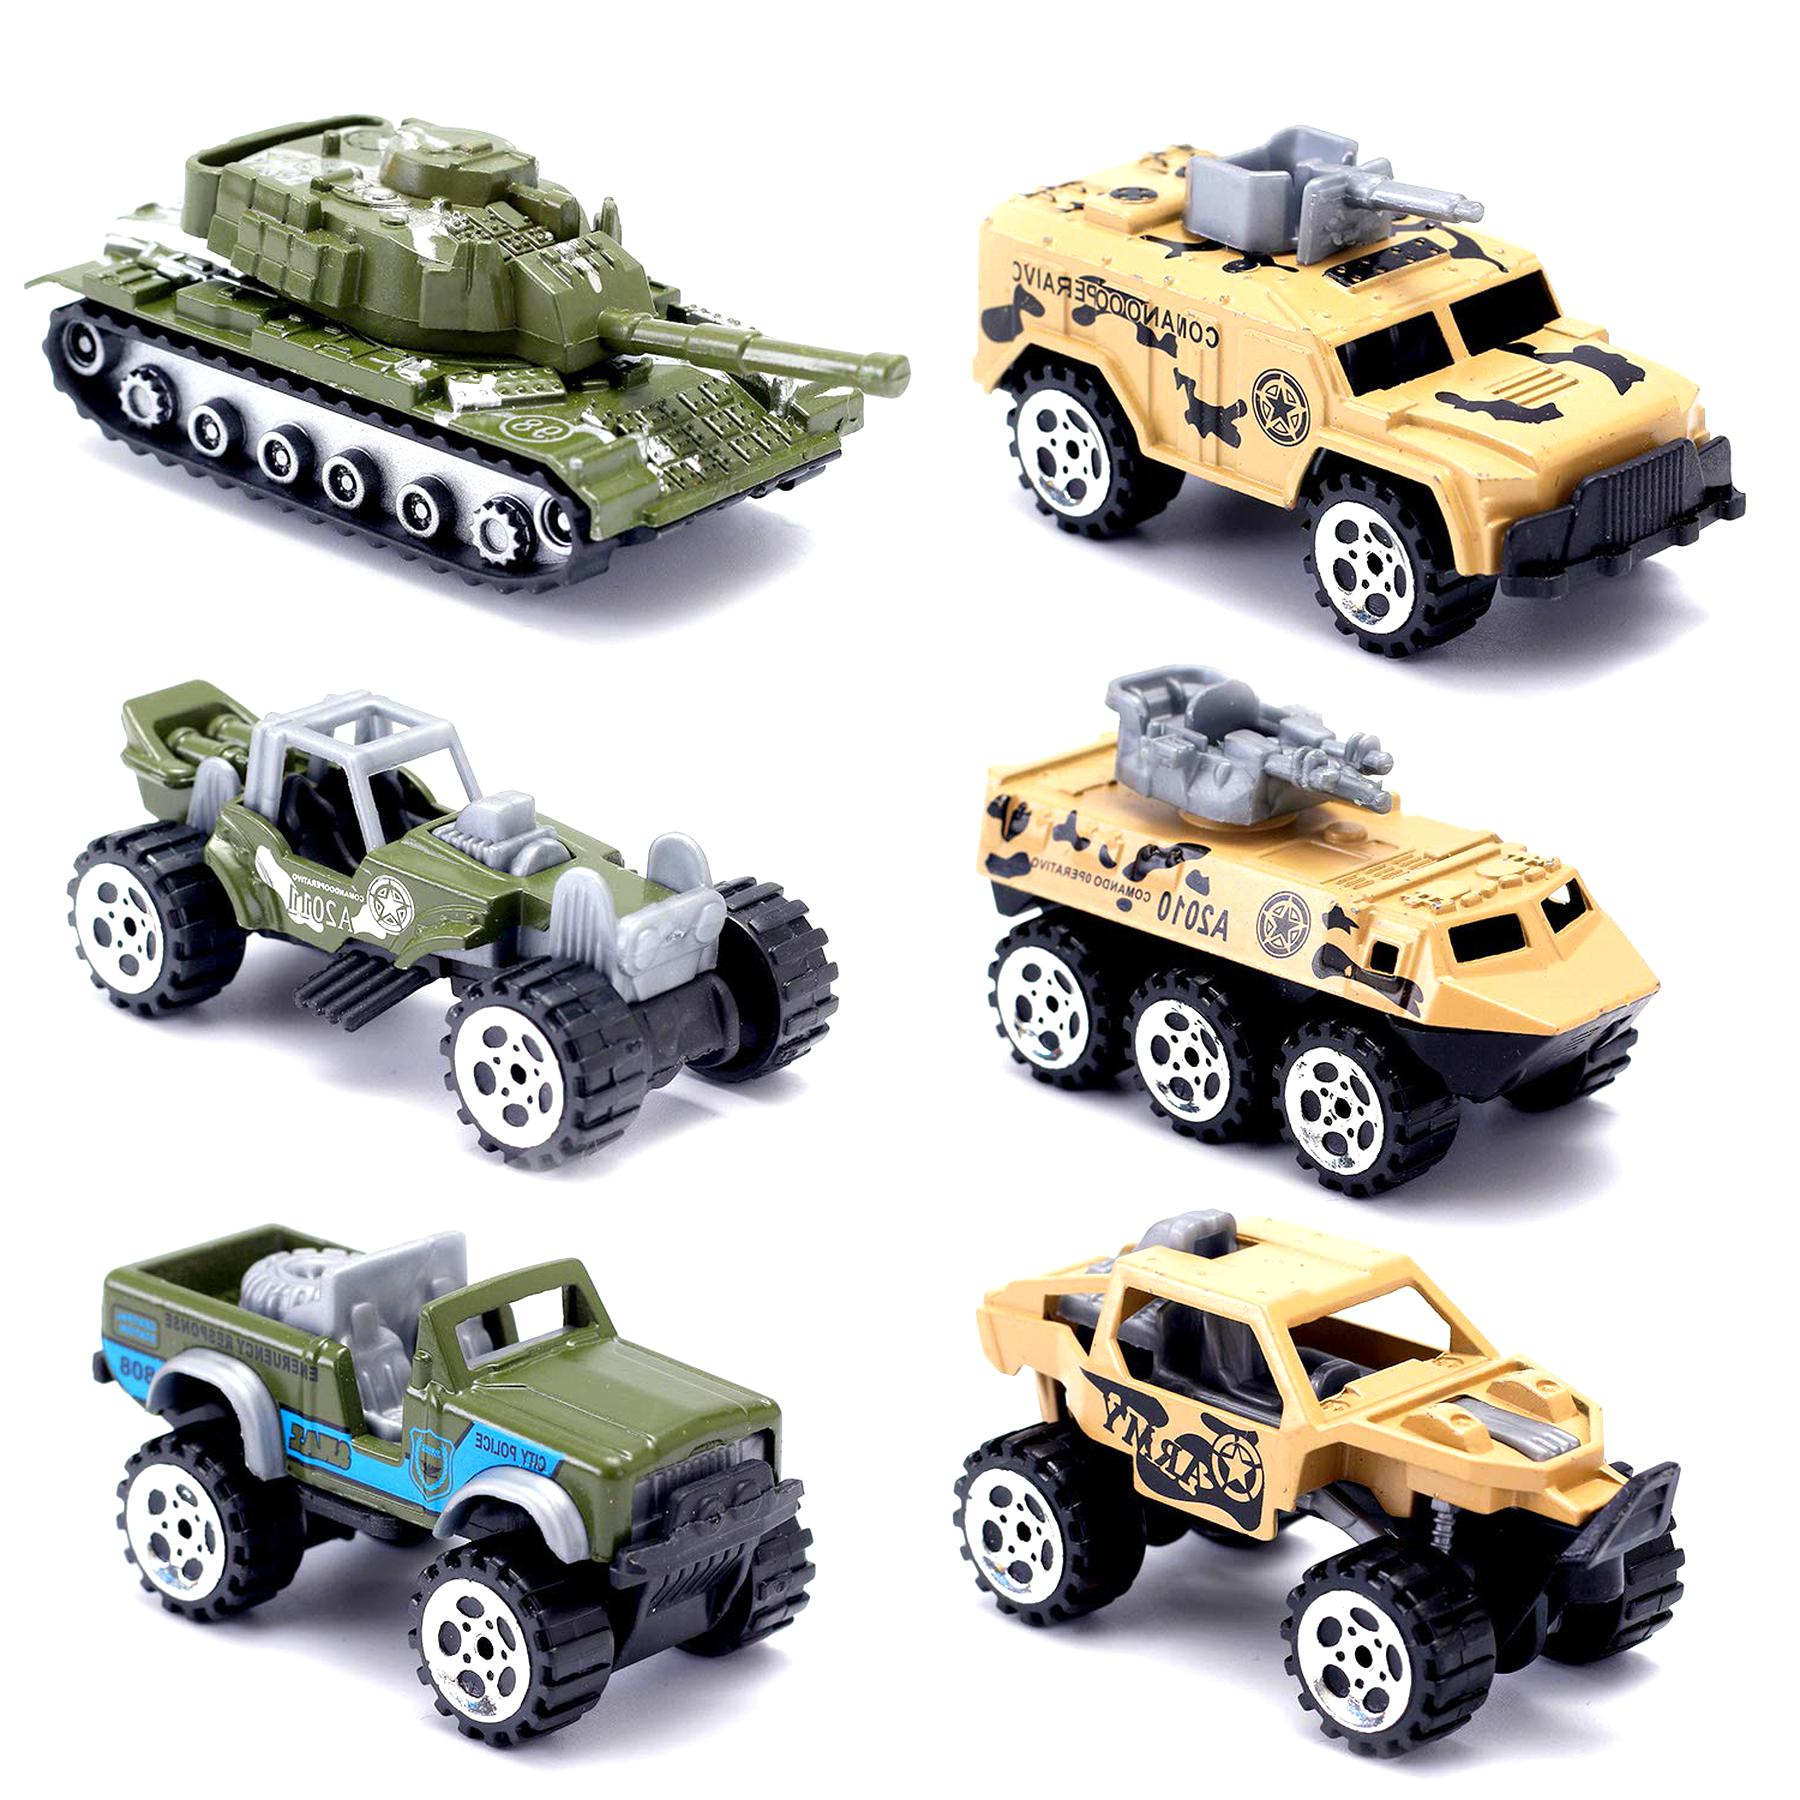 Military Vehicles For Sale >> Toy Military Vehicles For Sale Only 4 Left At 75